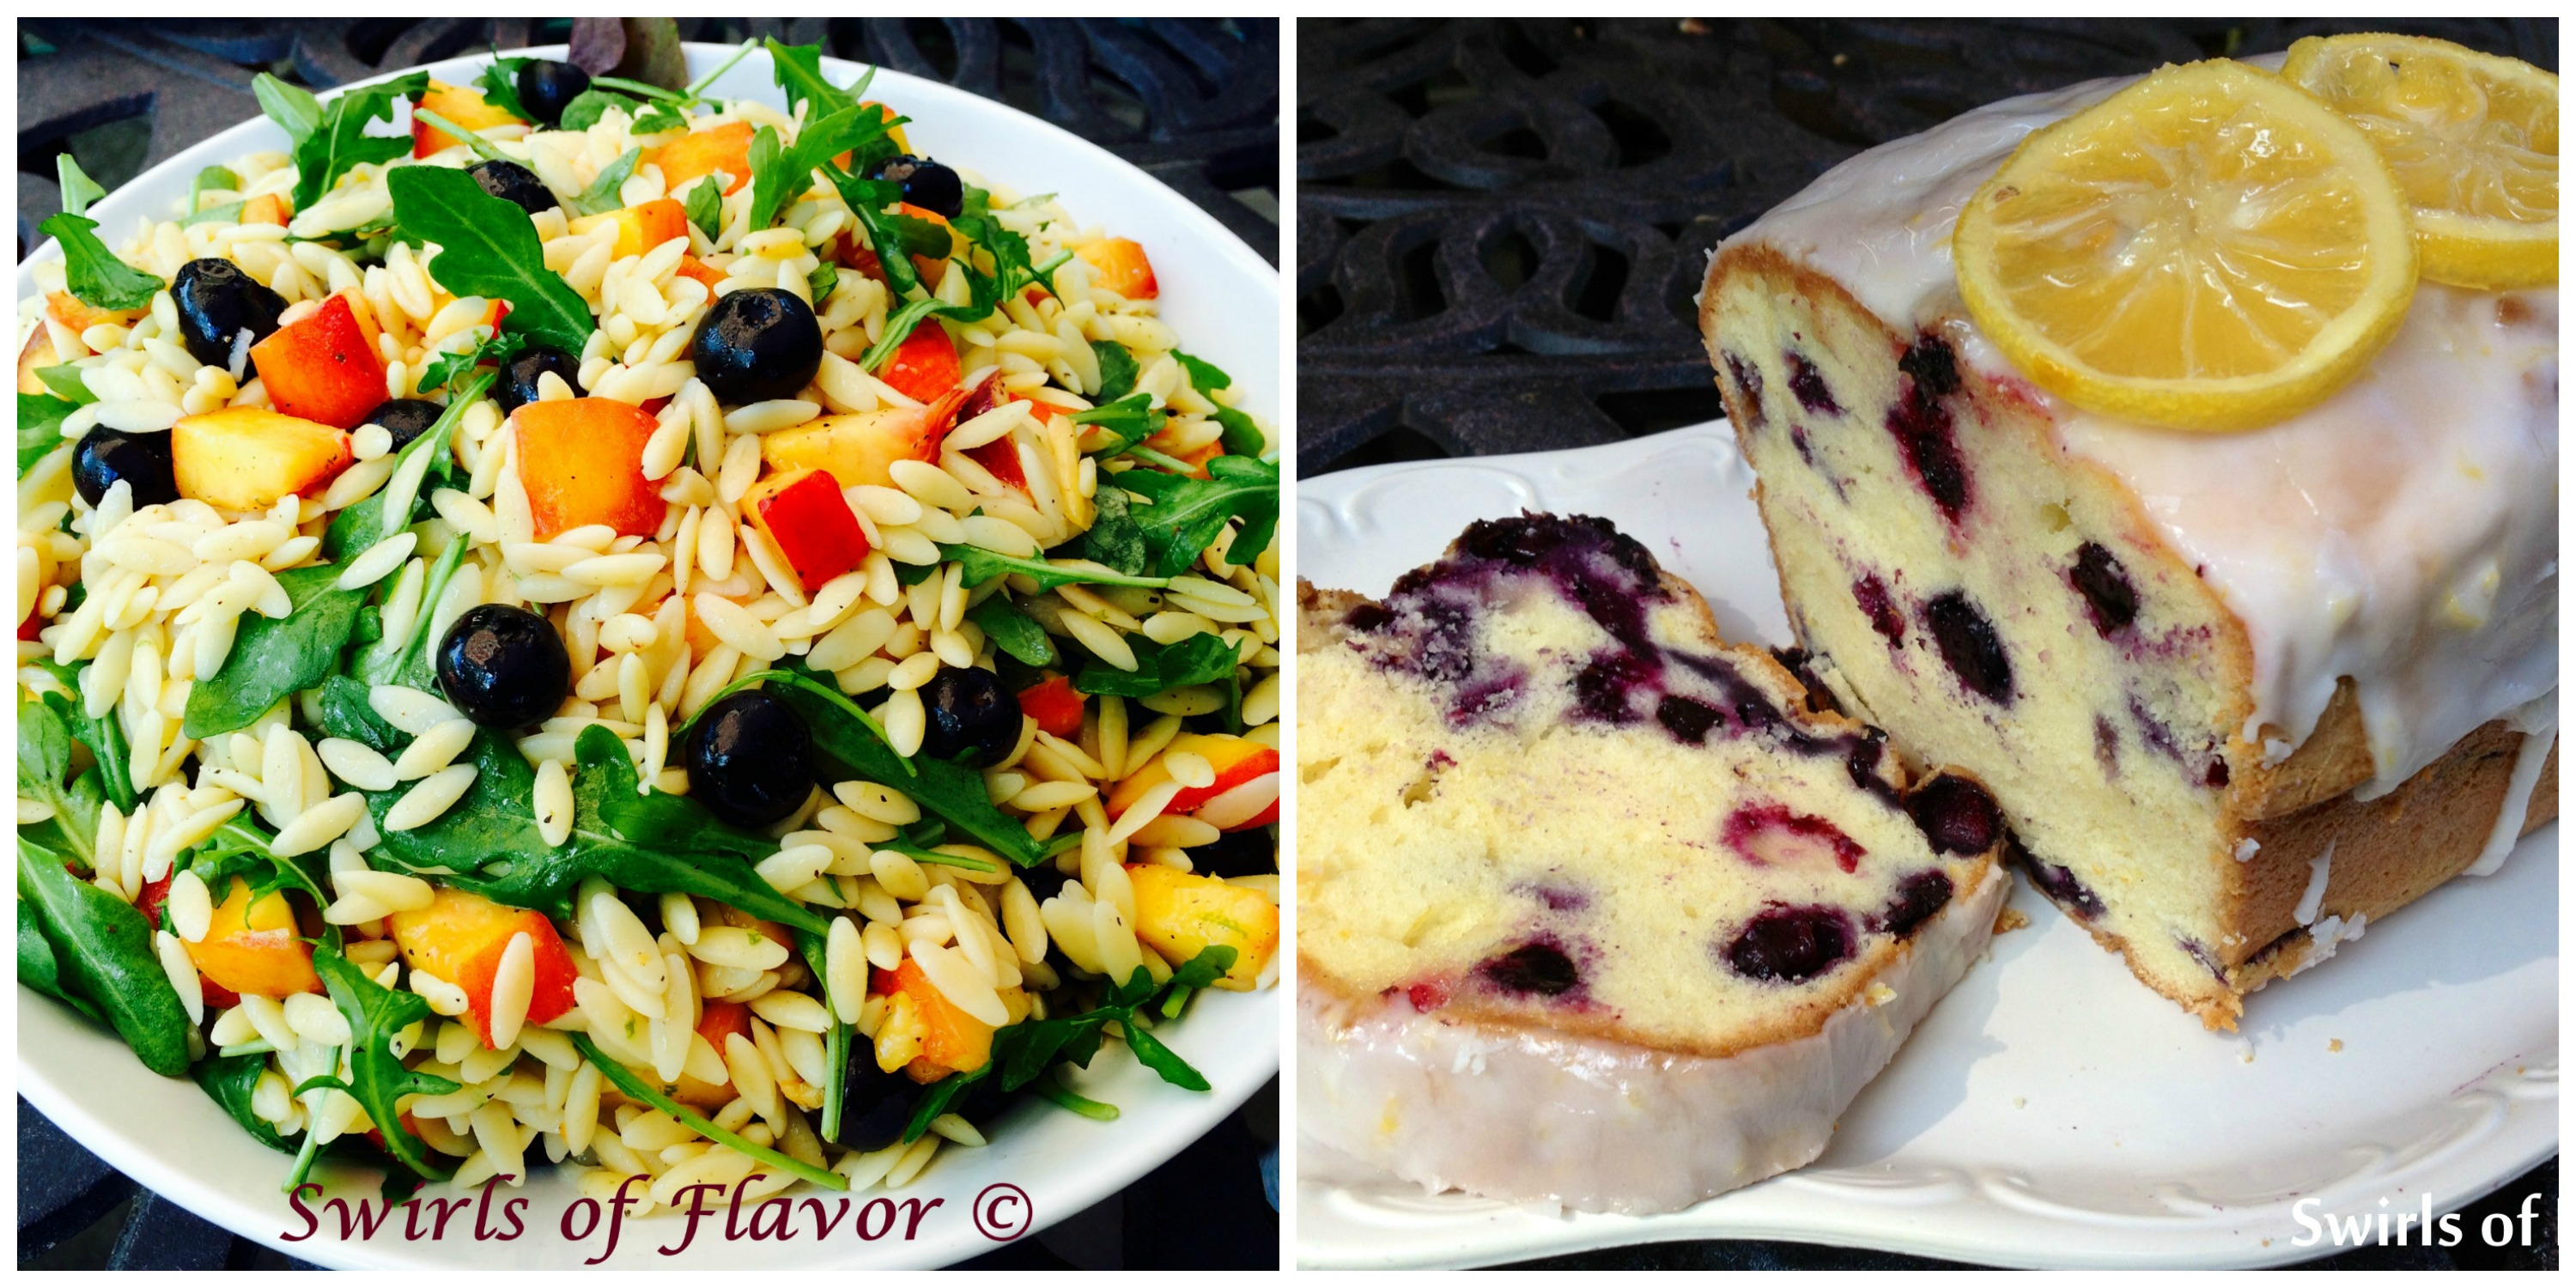 Blueberry Peach Orzo and Blueberry Pound Cake